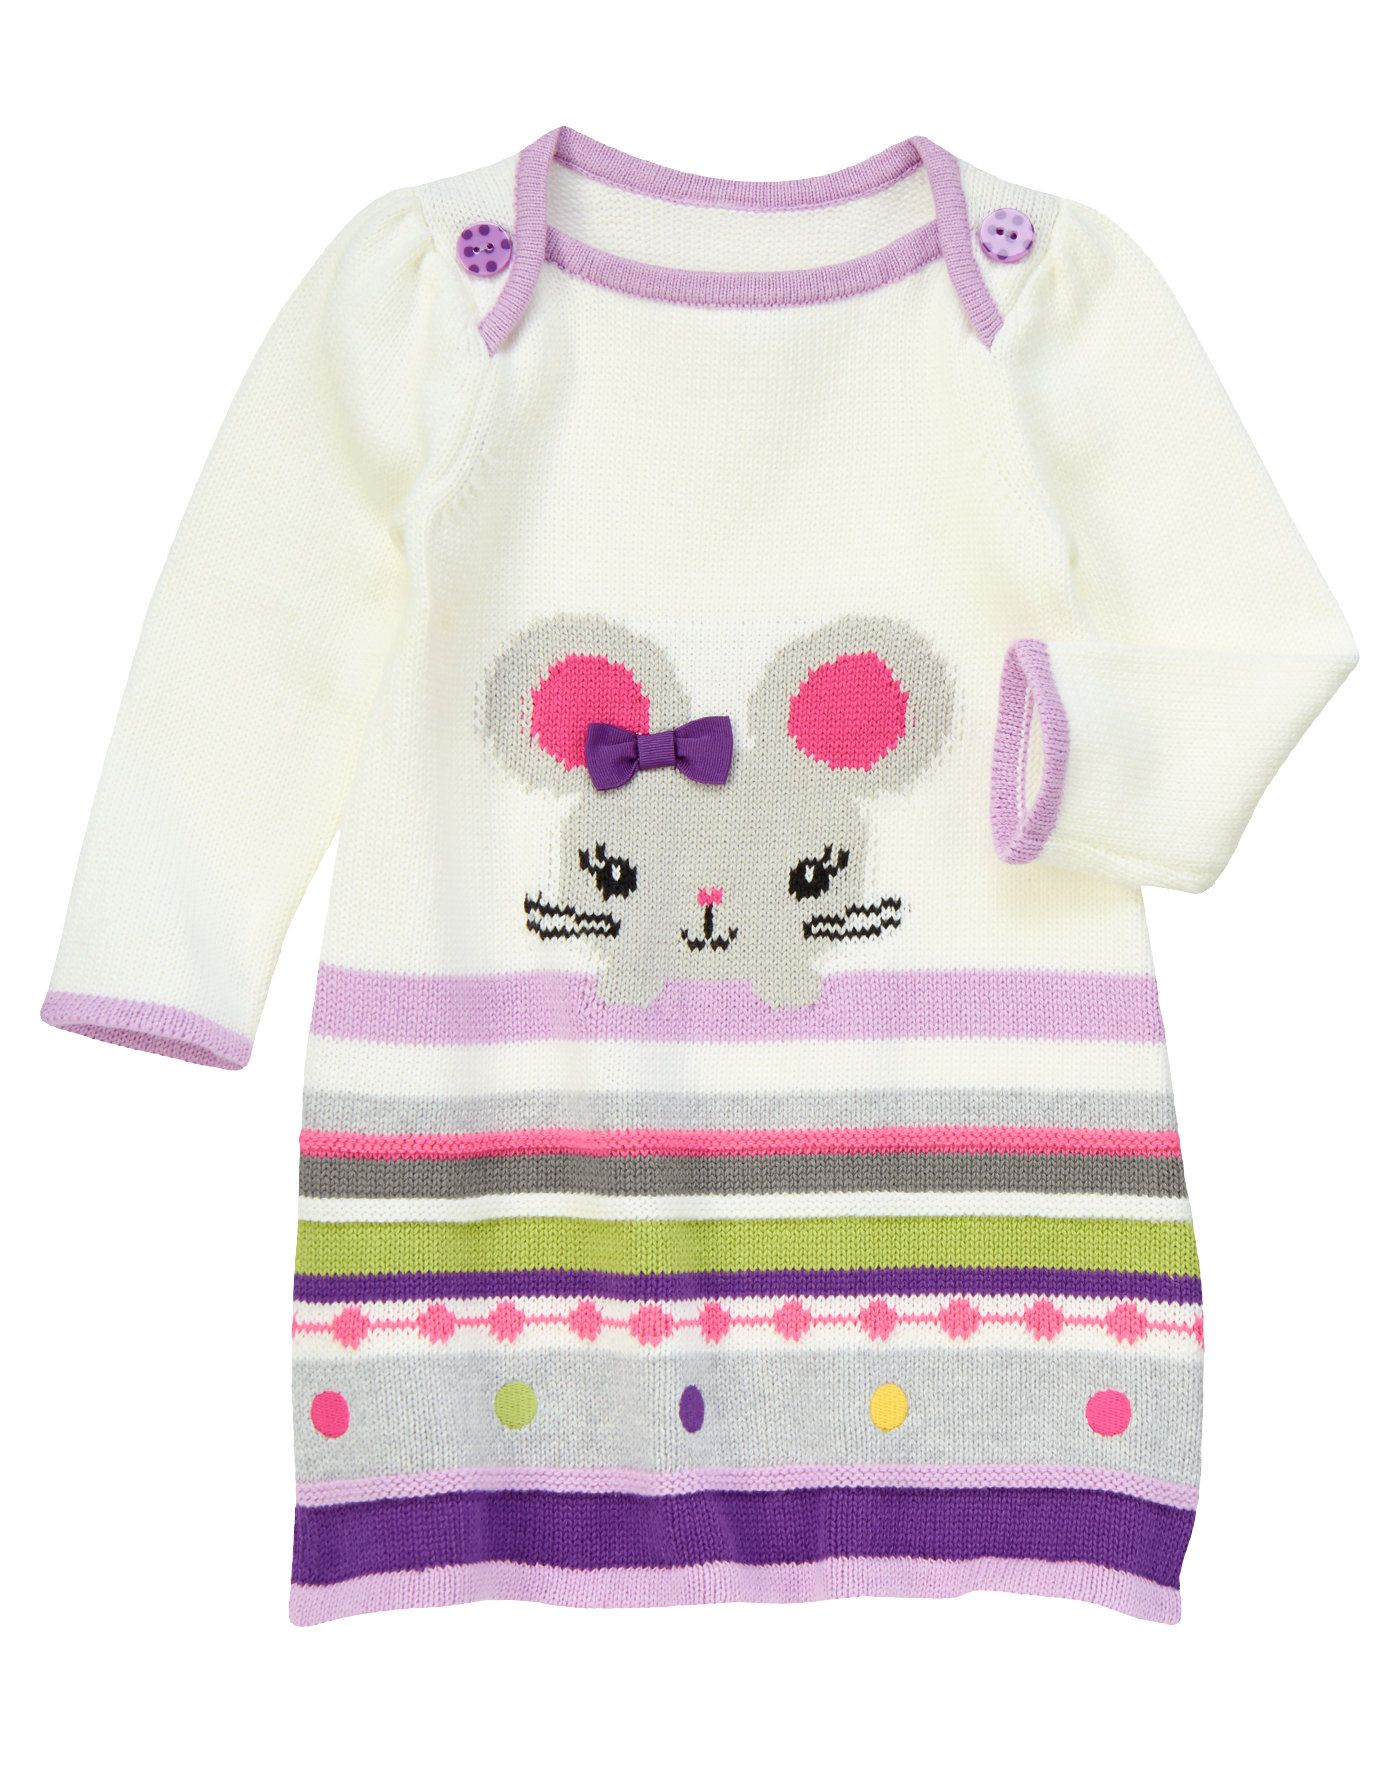 8df98f9ab7ba Soft sweater dress is brightened up with Fair Isle design and a sweet  little mouse.